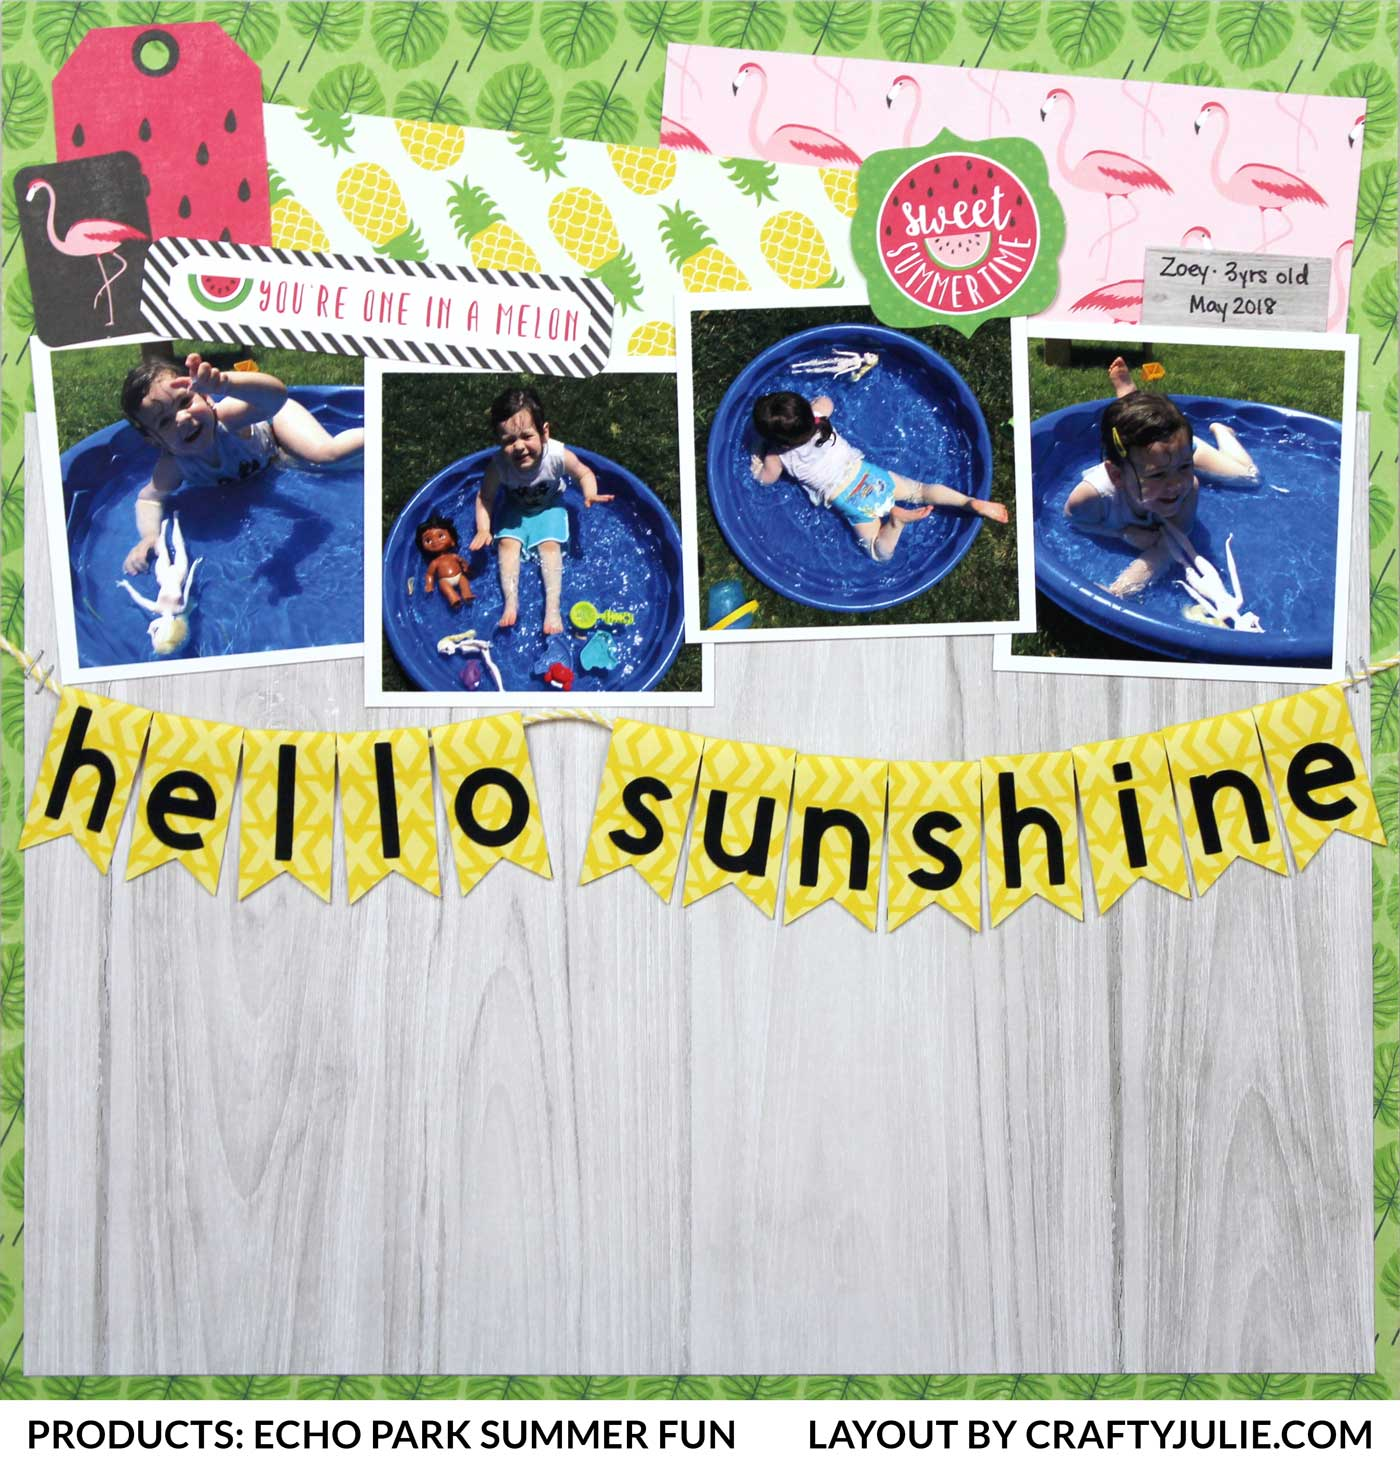 Crafty Julie | Echo Park Summer Fun Collection Kit Layout | 12x12 Scrapbook Layout